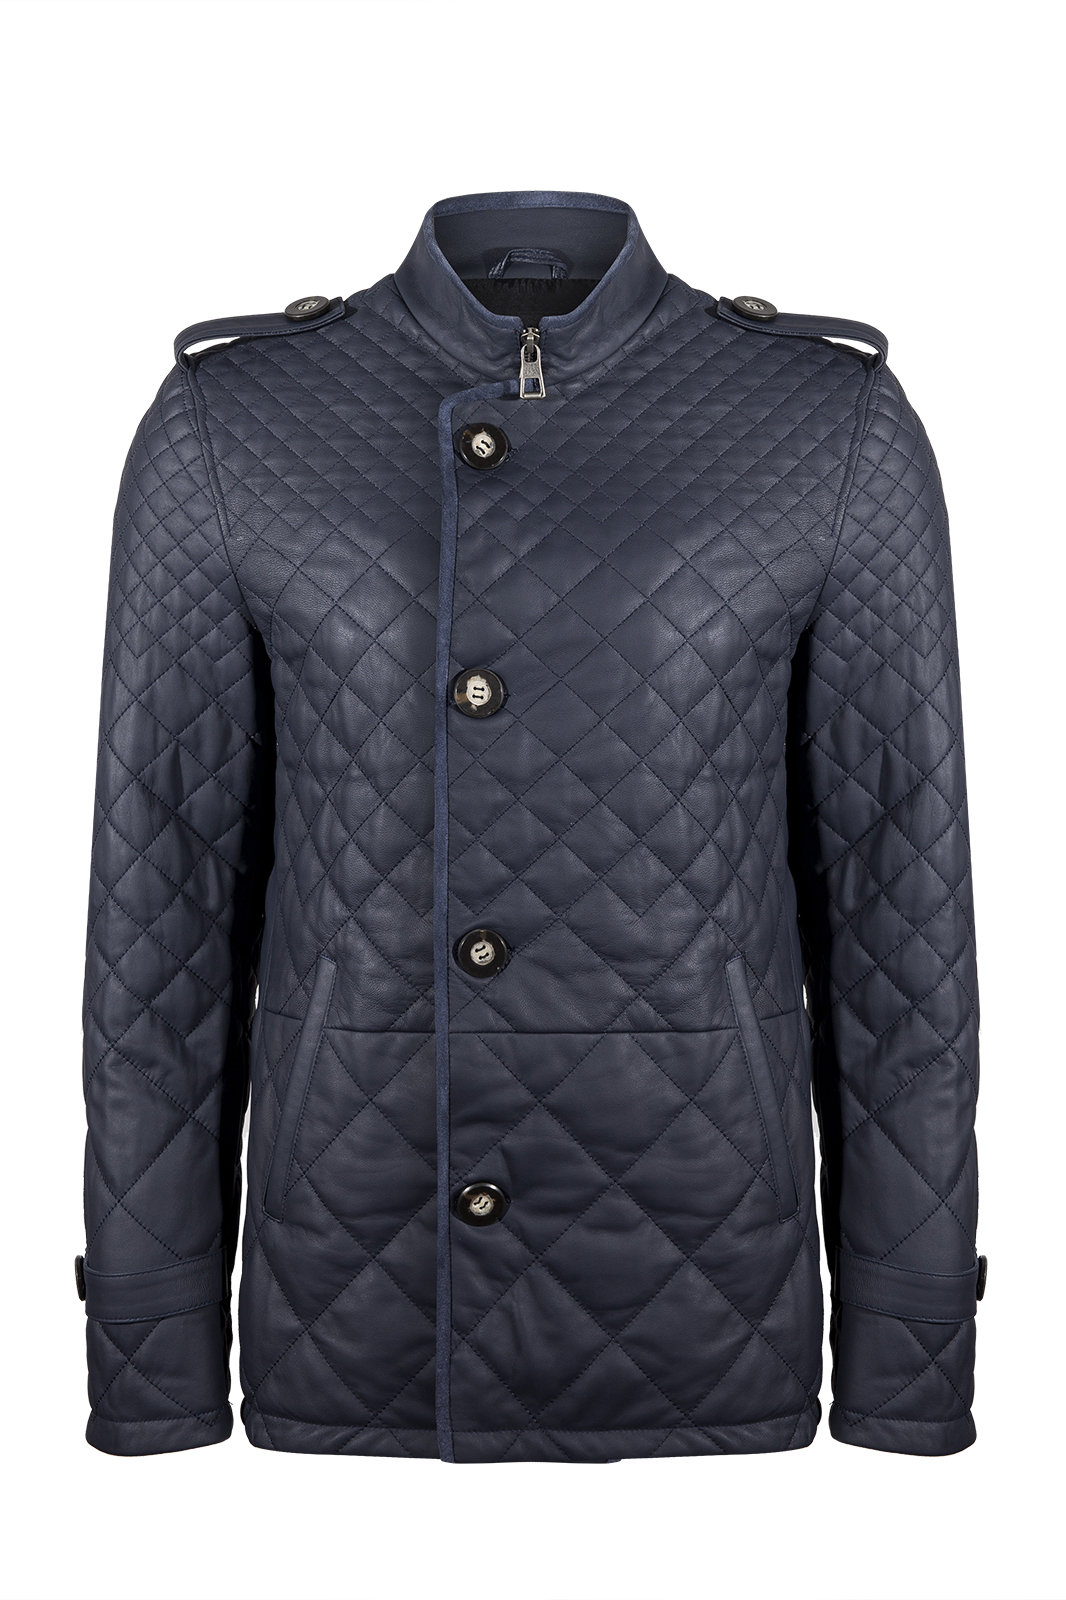 IPAM10102 Navy Blue Leather Jacket